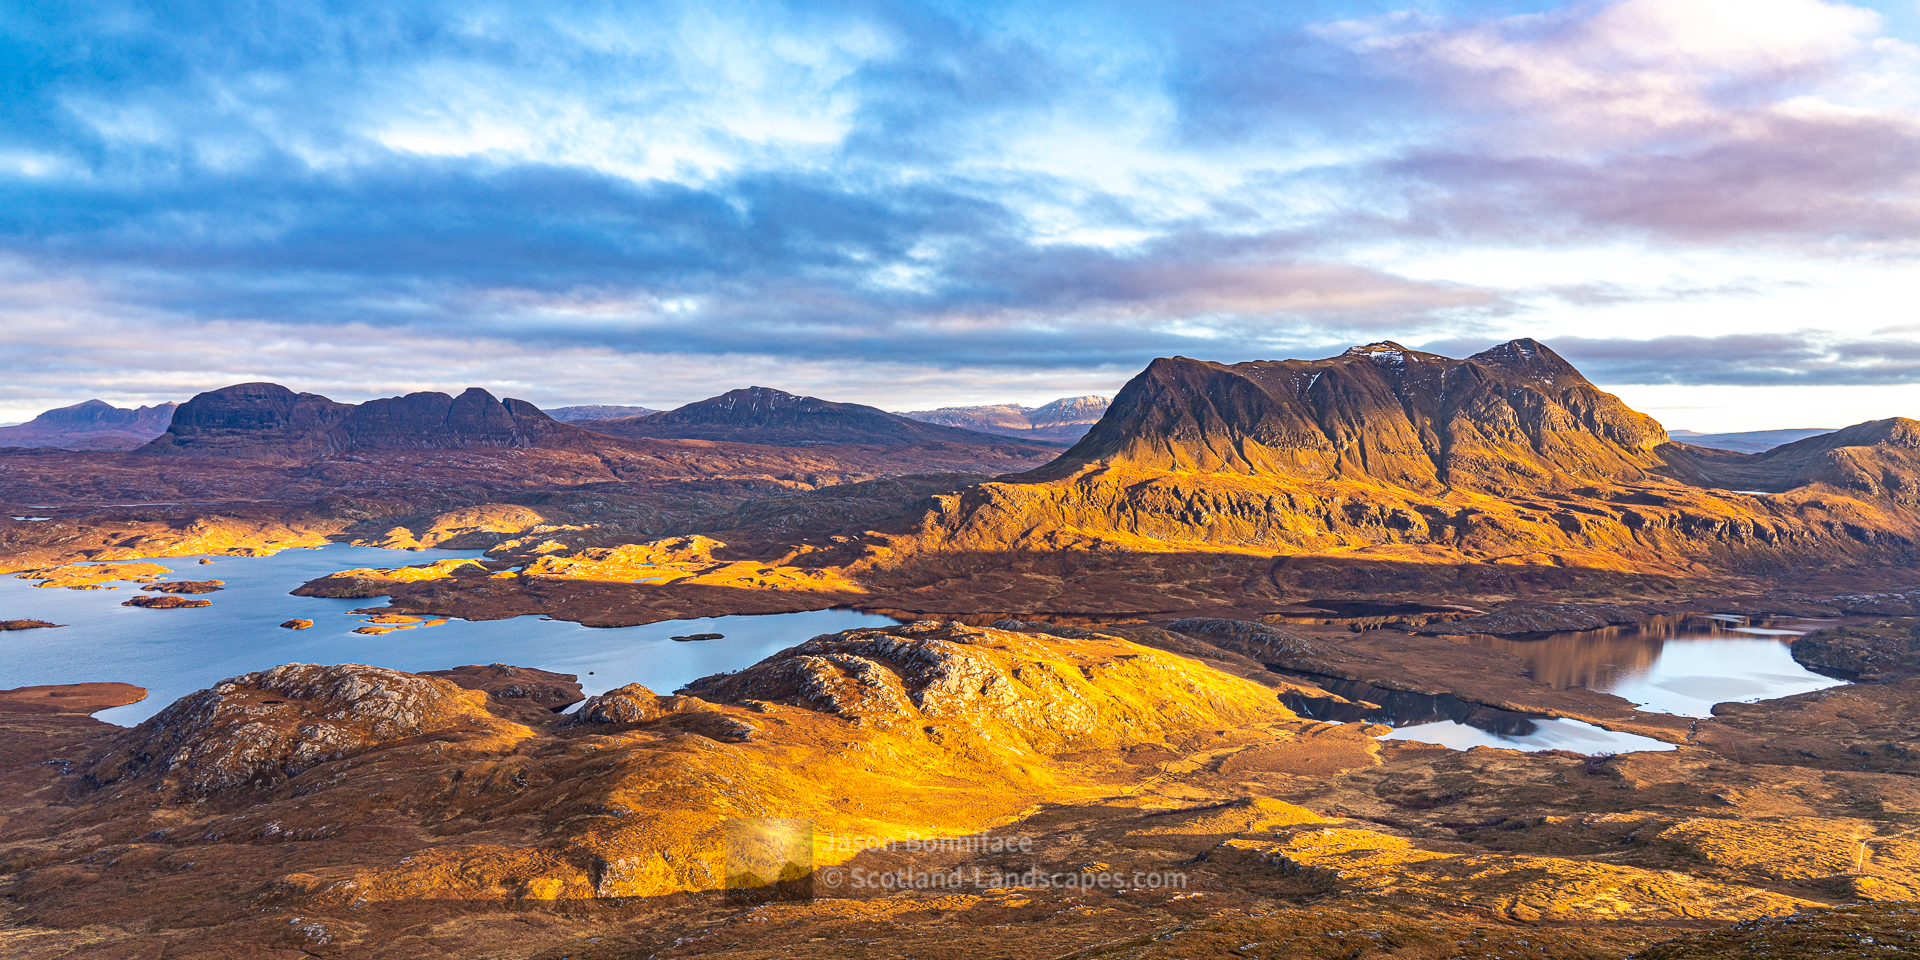 Suilven, Canisp, Cul Mor from Stac Pollaidh, Assynt & Ullapool